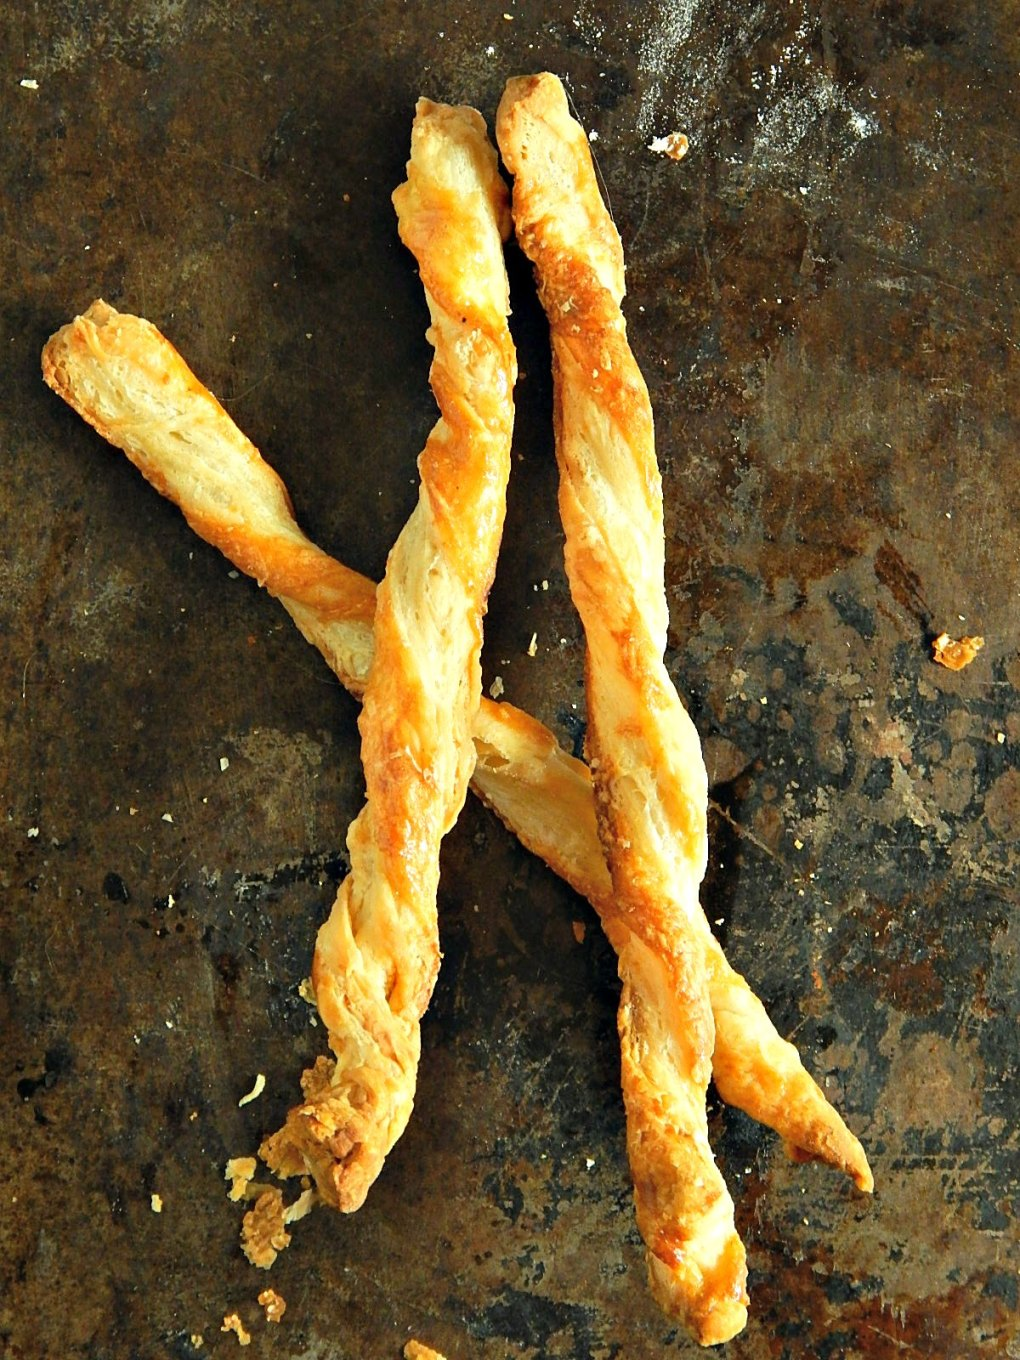 Parmesan Puff Pastry Twists made from leftover Puff Pastry